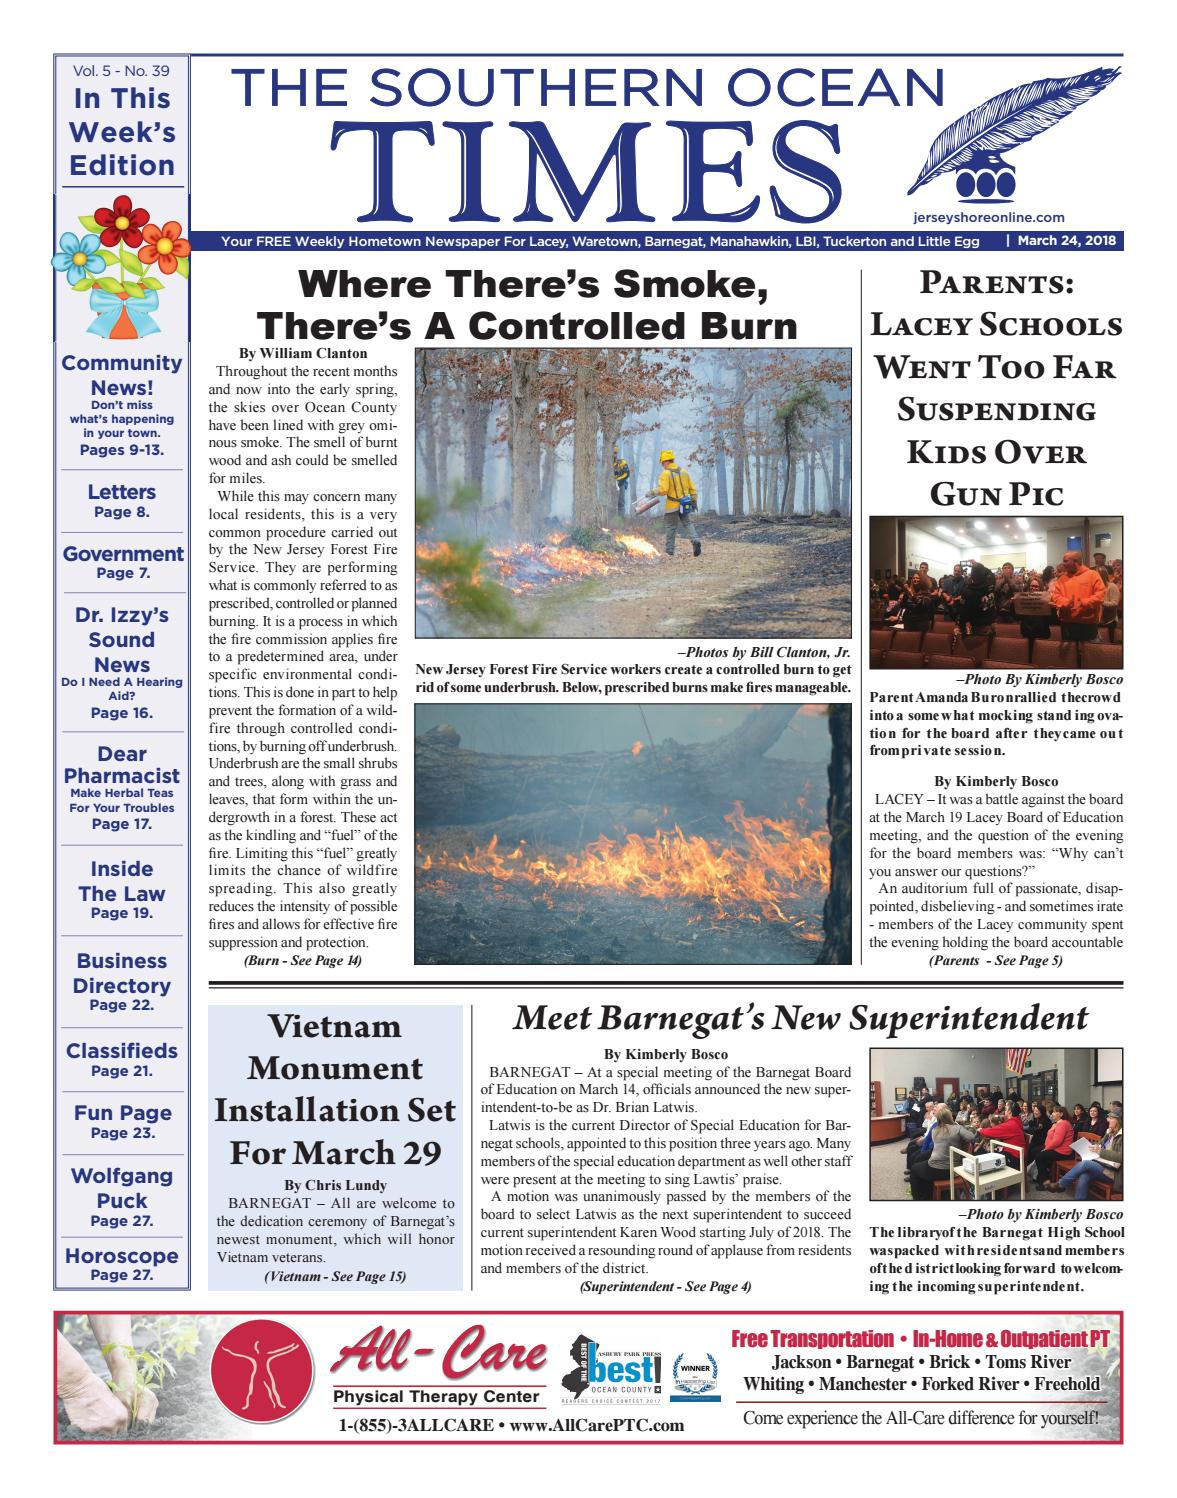 2018-03-24 - The Southern Ocean Times by Micromedia